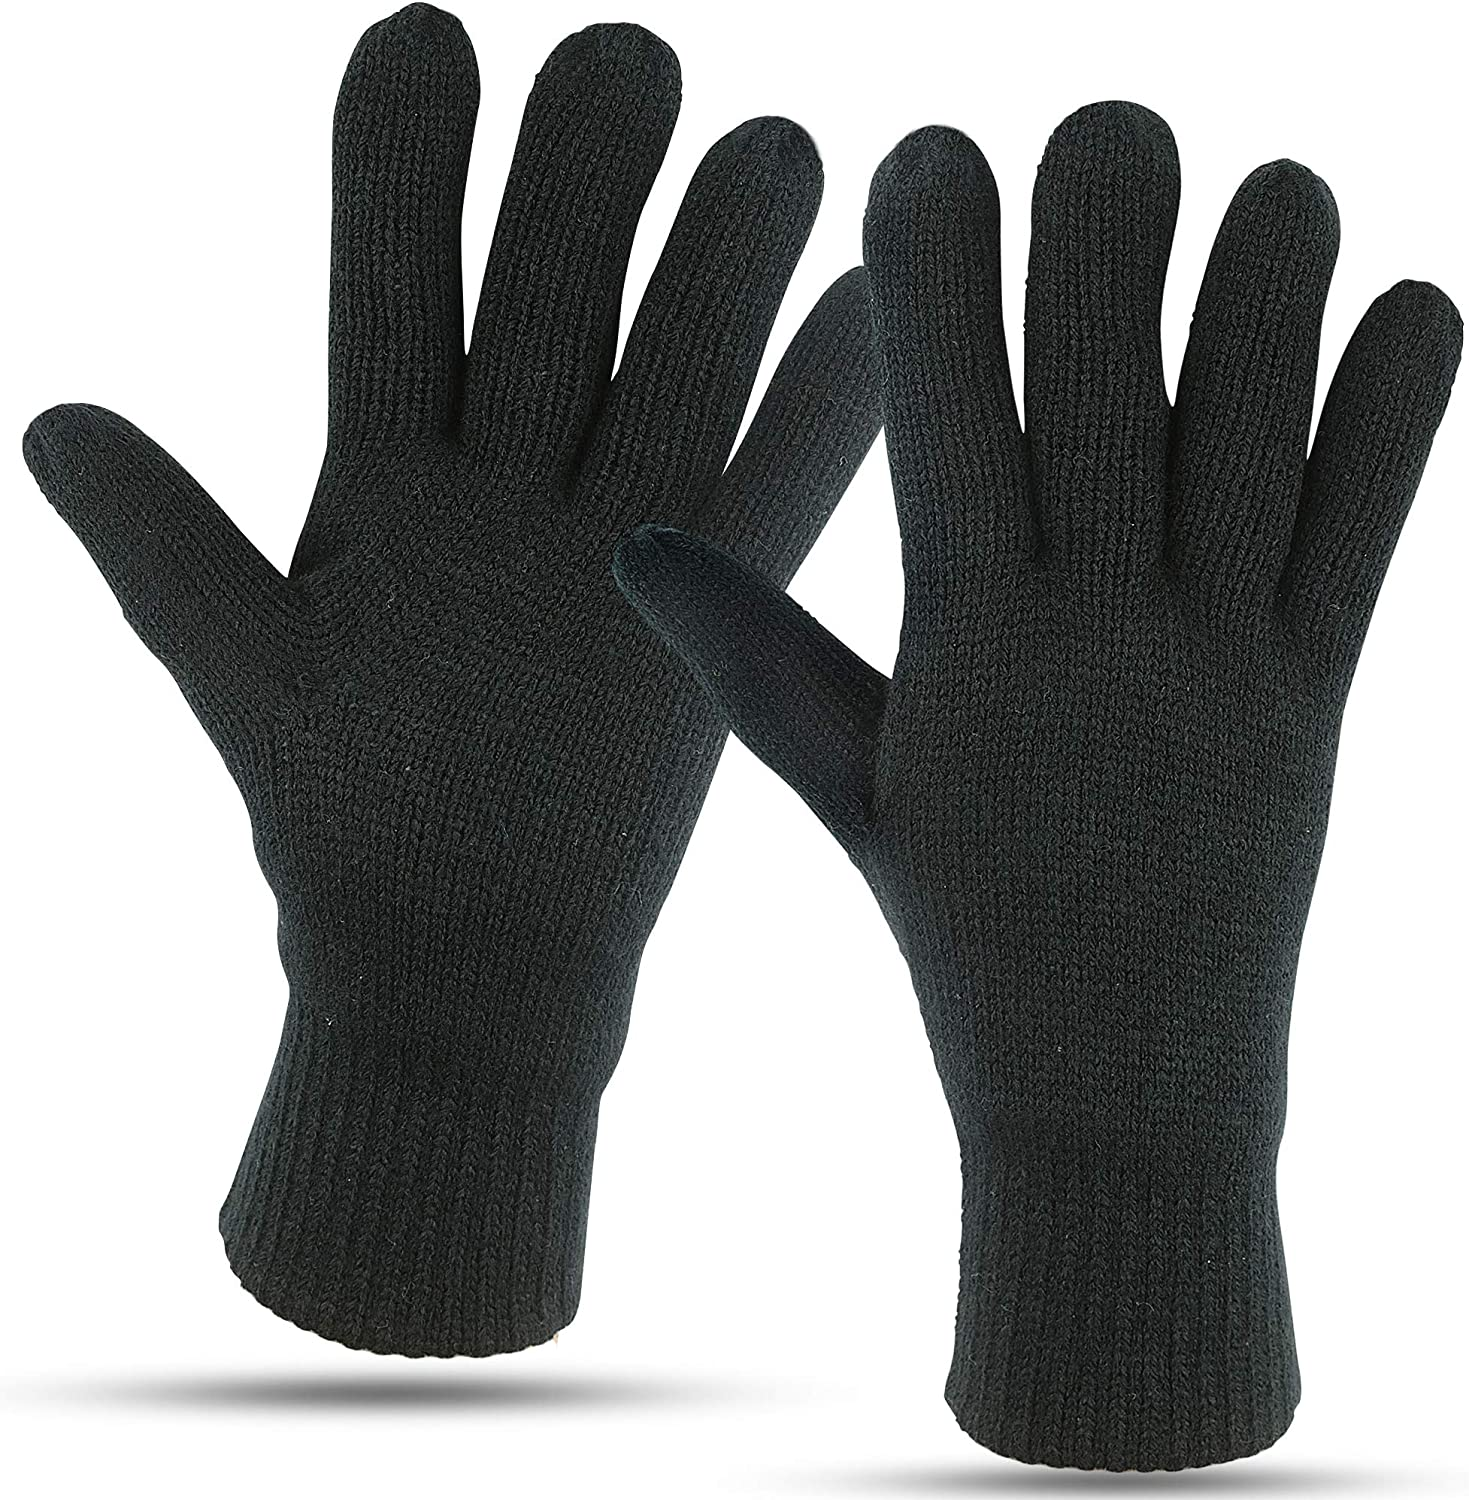 Winter Gloves For Men: Mens Cold Weather Snow Glove: Men's Knit Thinsulate  Thermal Insulation Black at Amazon Men's Clothing store